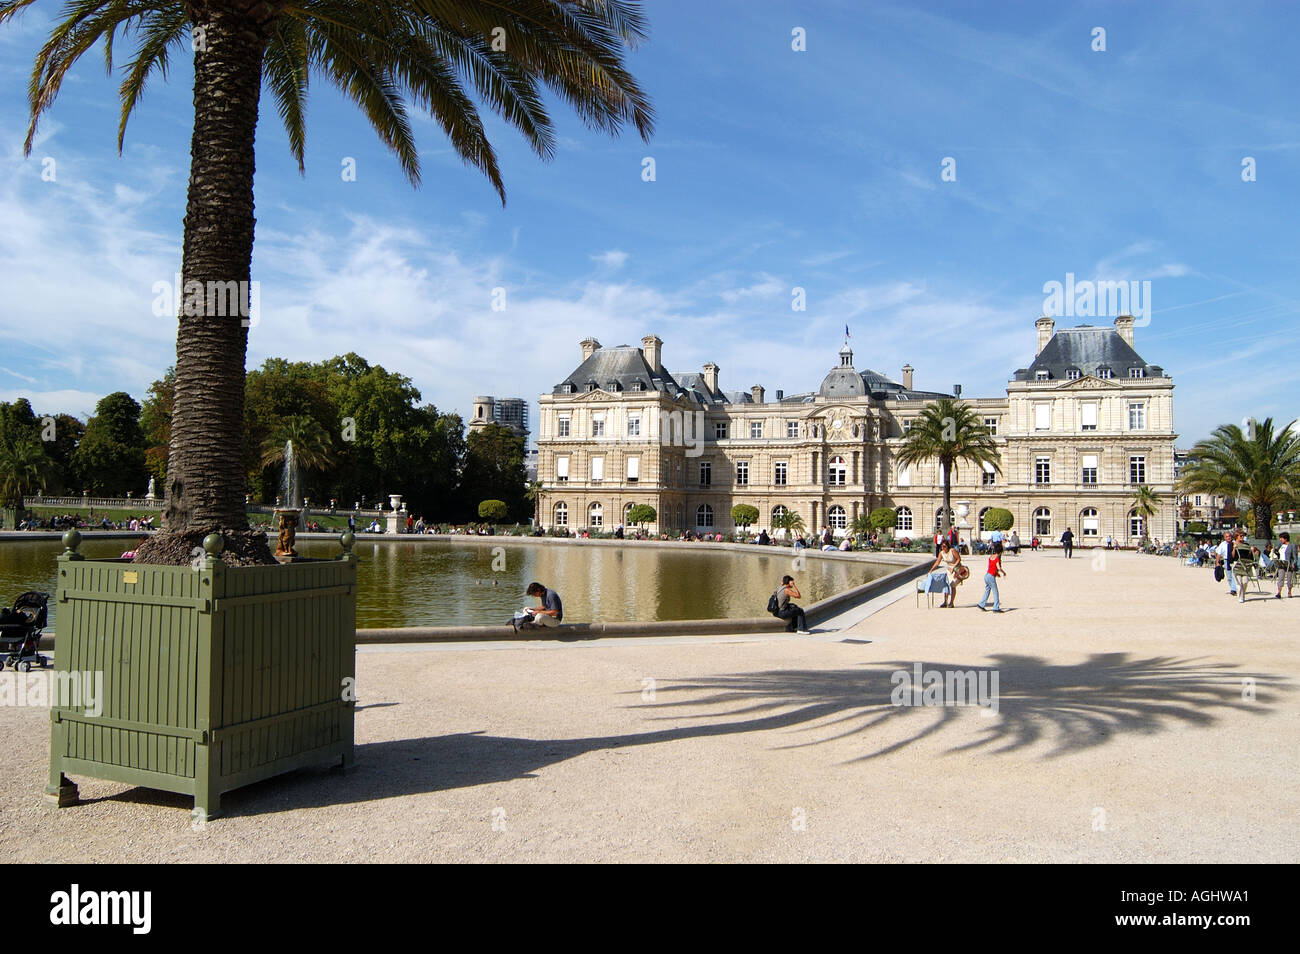 palais du luxembourg and palm tree in jardin du luxembourg paris stock photo royalty free image. Black Bedroom Furniture Sets. Home Design Ideas